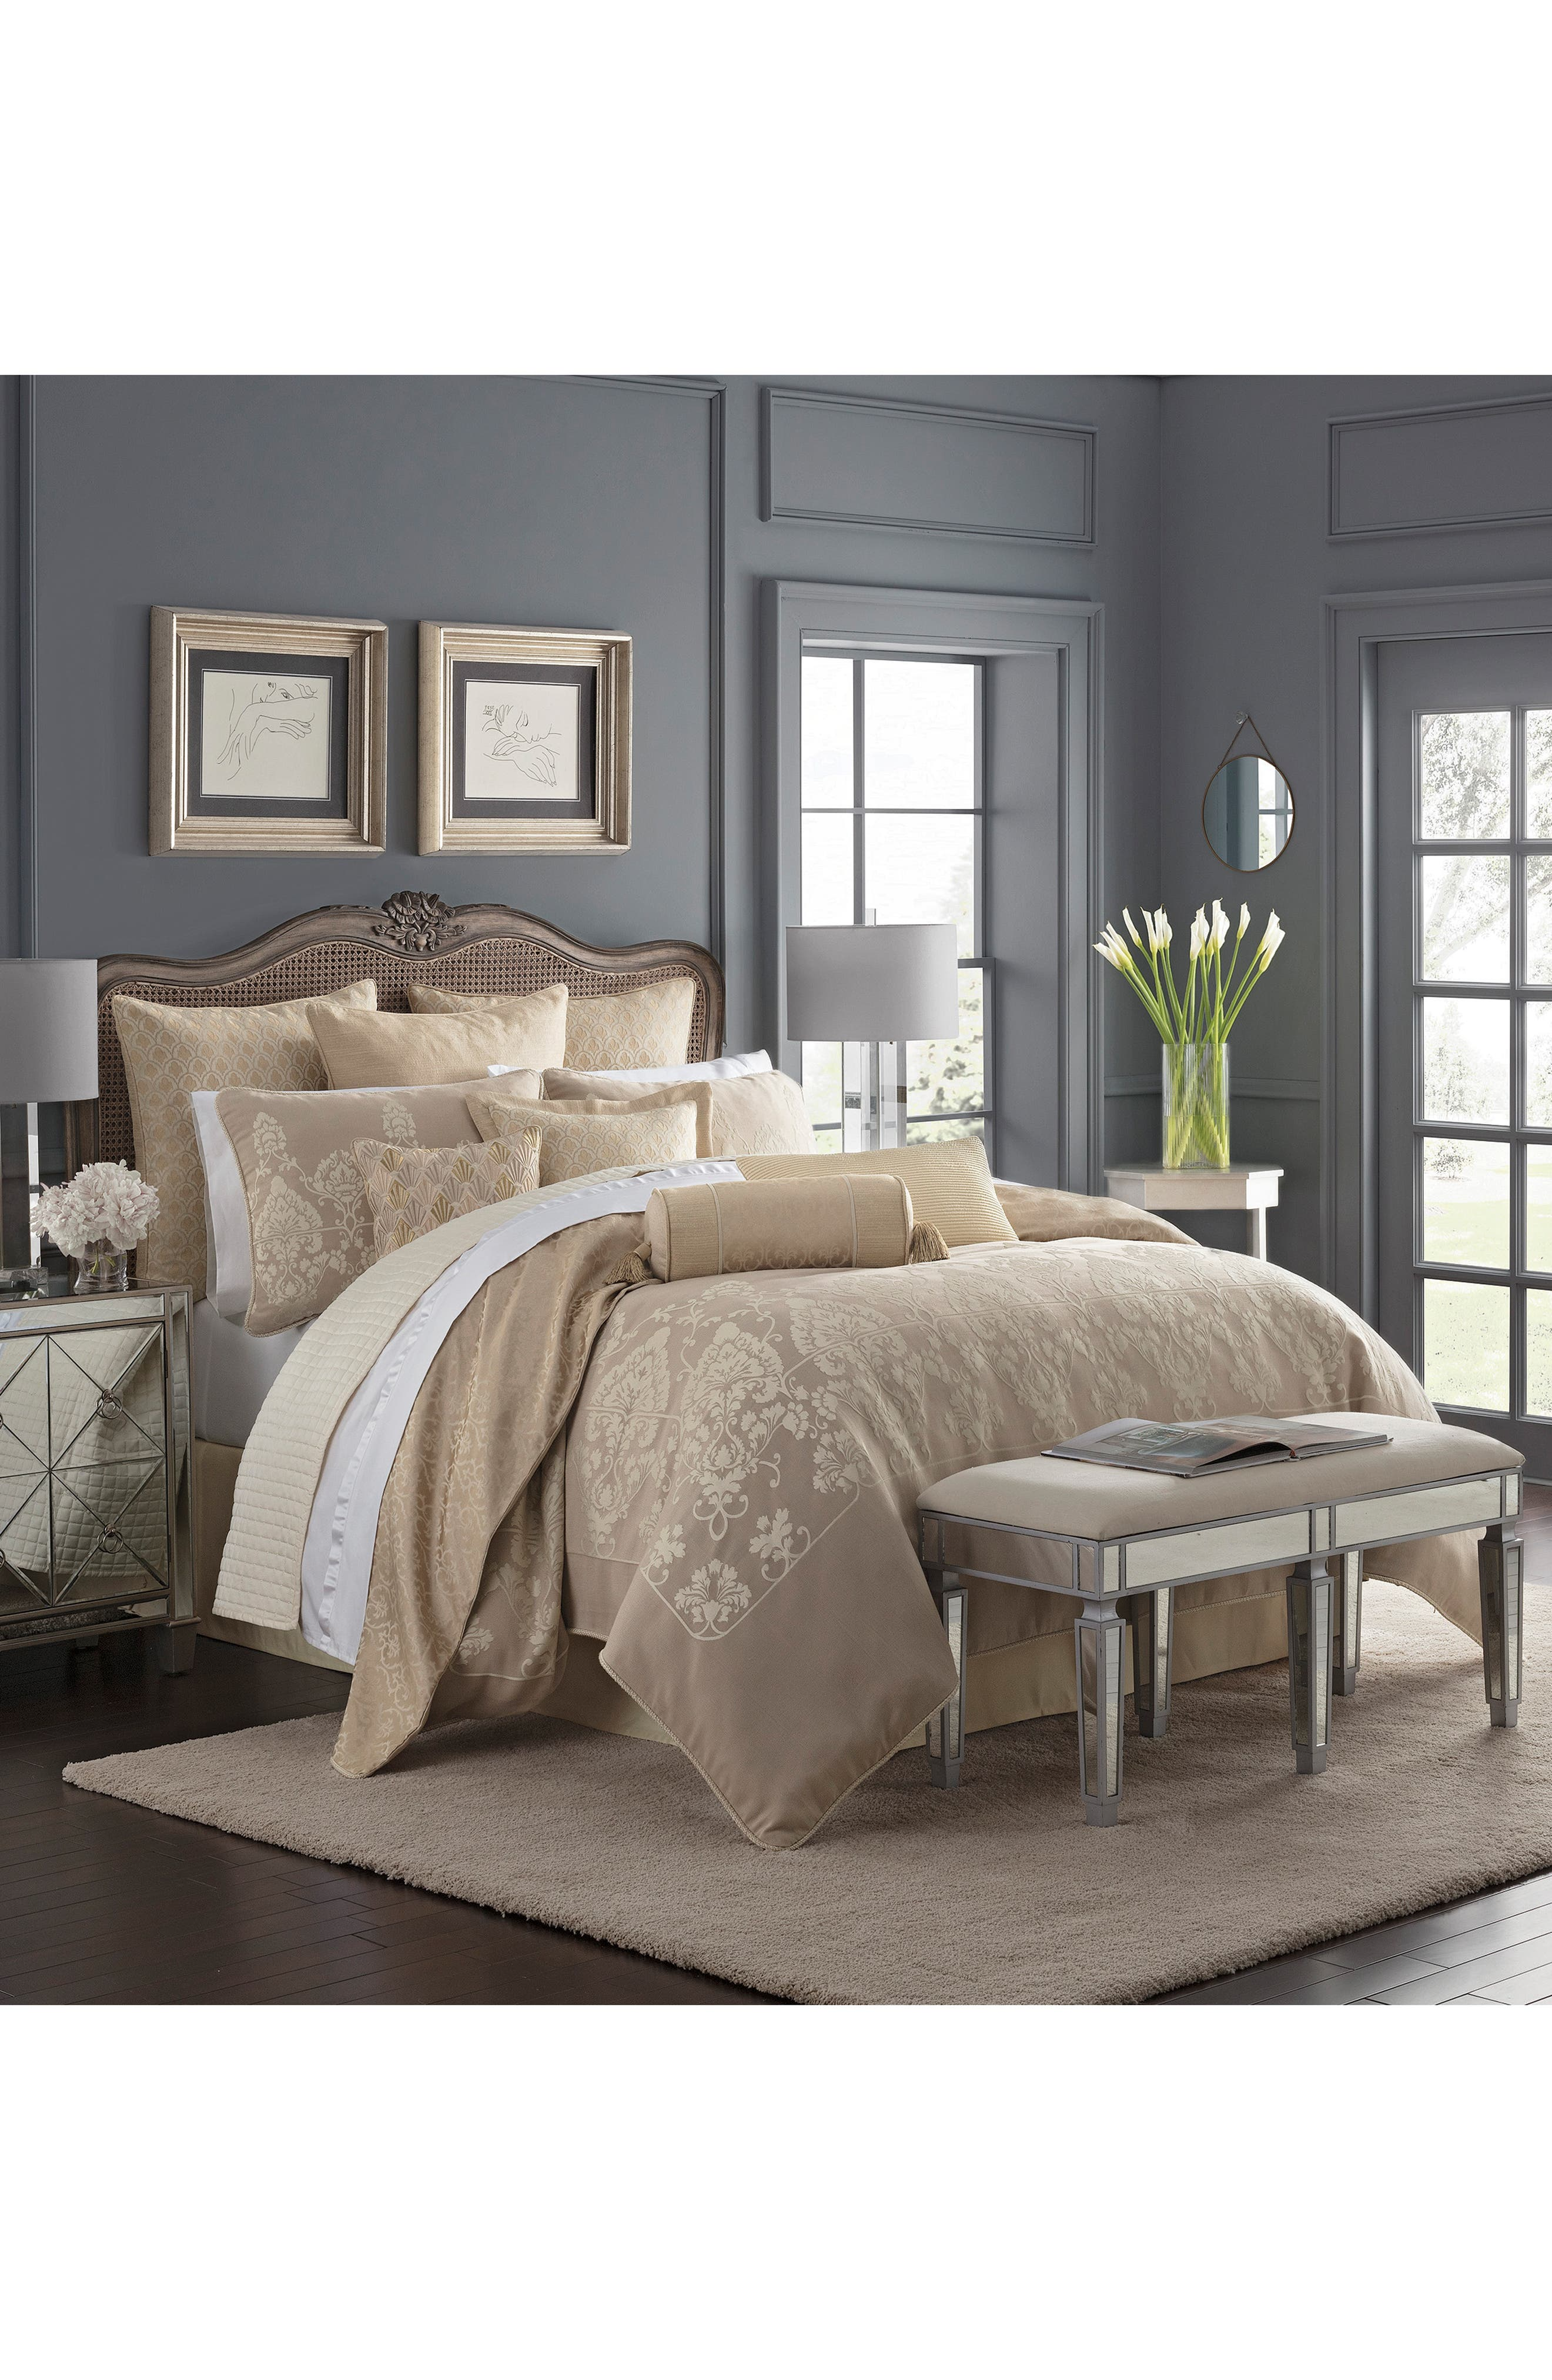 WATERFORD,                             Abrielle Reversible Comforter, Sham & Bed Skirt Set,                             Alternate thumbnail 7, color,                             CHAMPAGNE